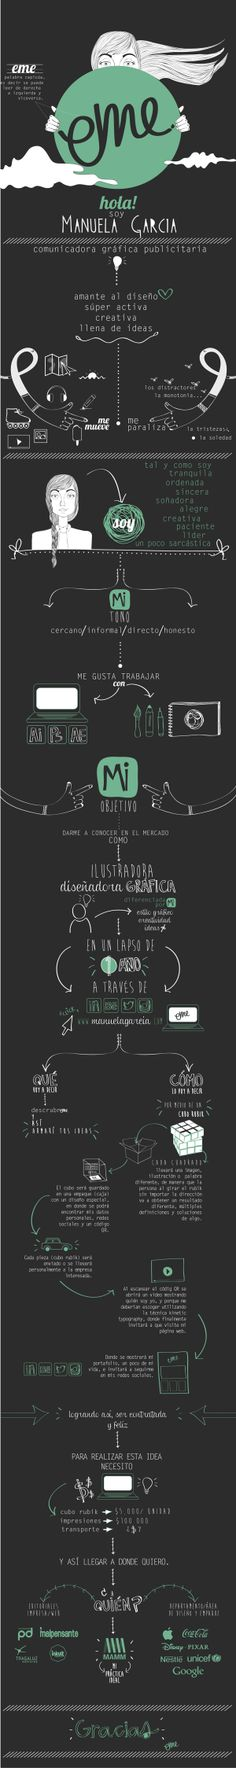 About Me / Personal Brand  by Manuela García Aristizabal, via Behance